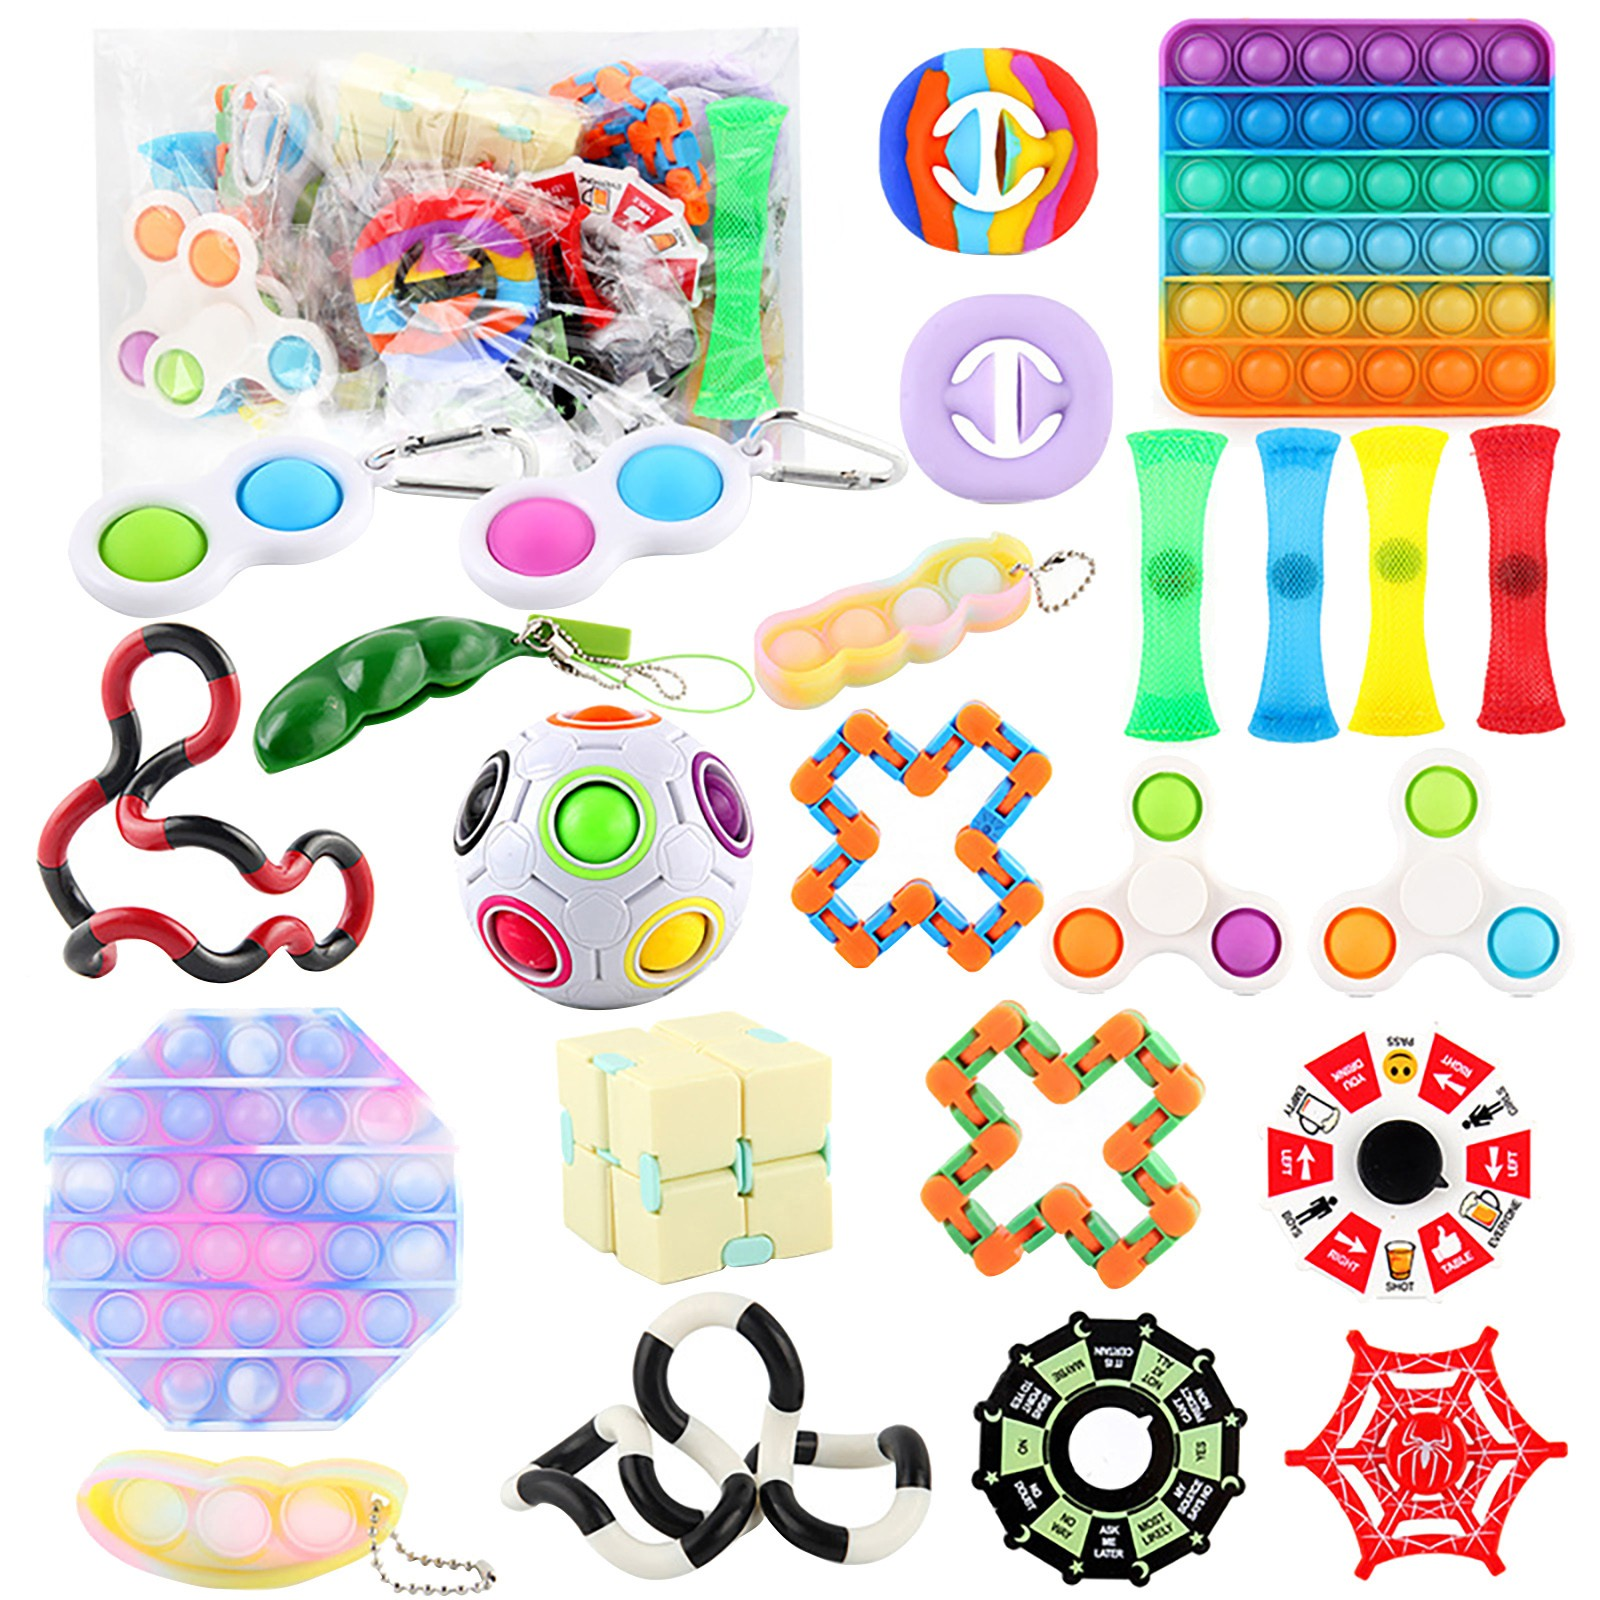 Soothing Marble Fidgets+Luminous Sticky Wall Balls+Pressure Ball Stress Reliever Toy+Colorful Puzzle Sensory Fidget Toys Sensory Fidget Toys Set 12 Pack,Push pop pop Bubble Fidget